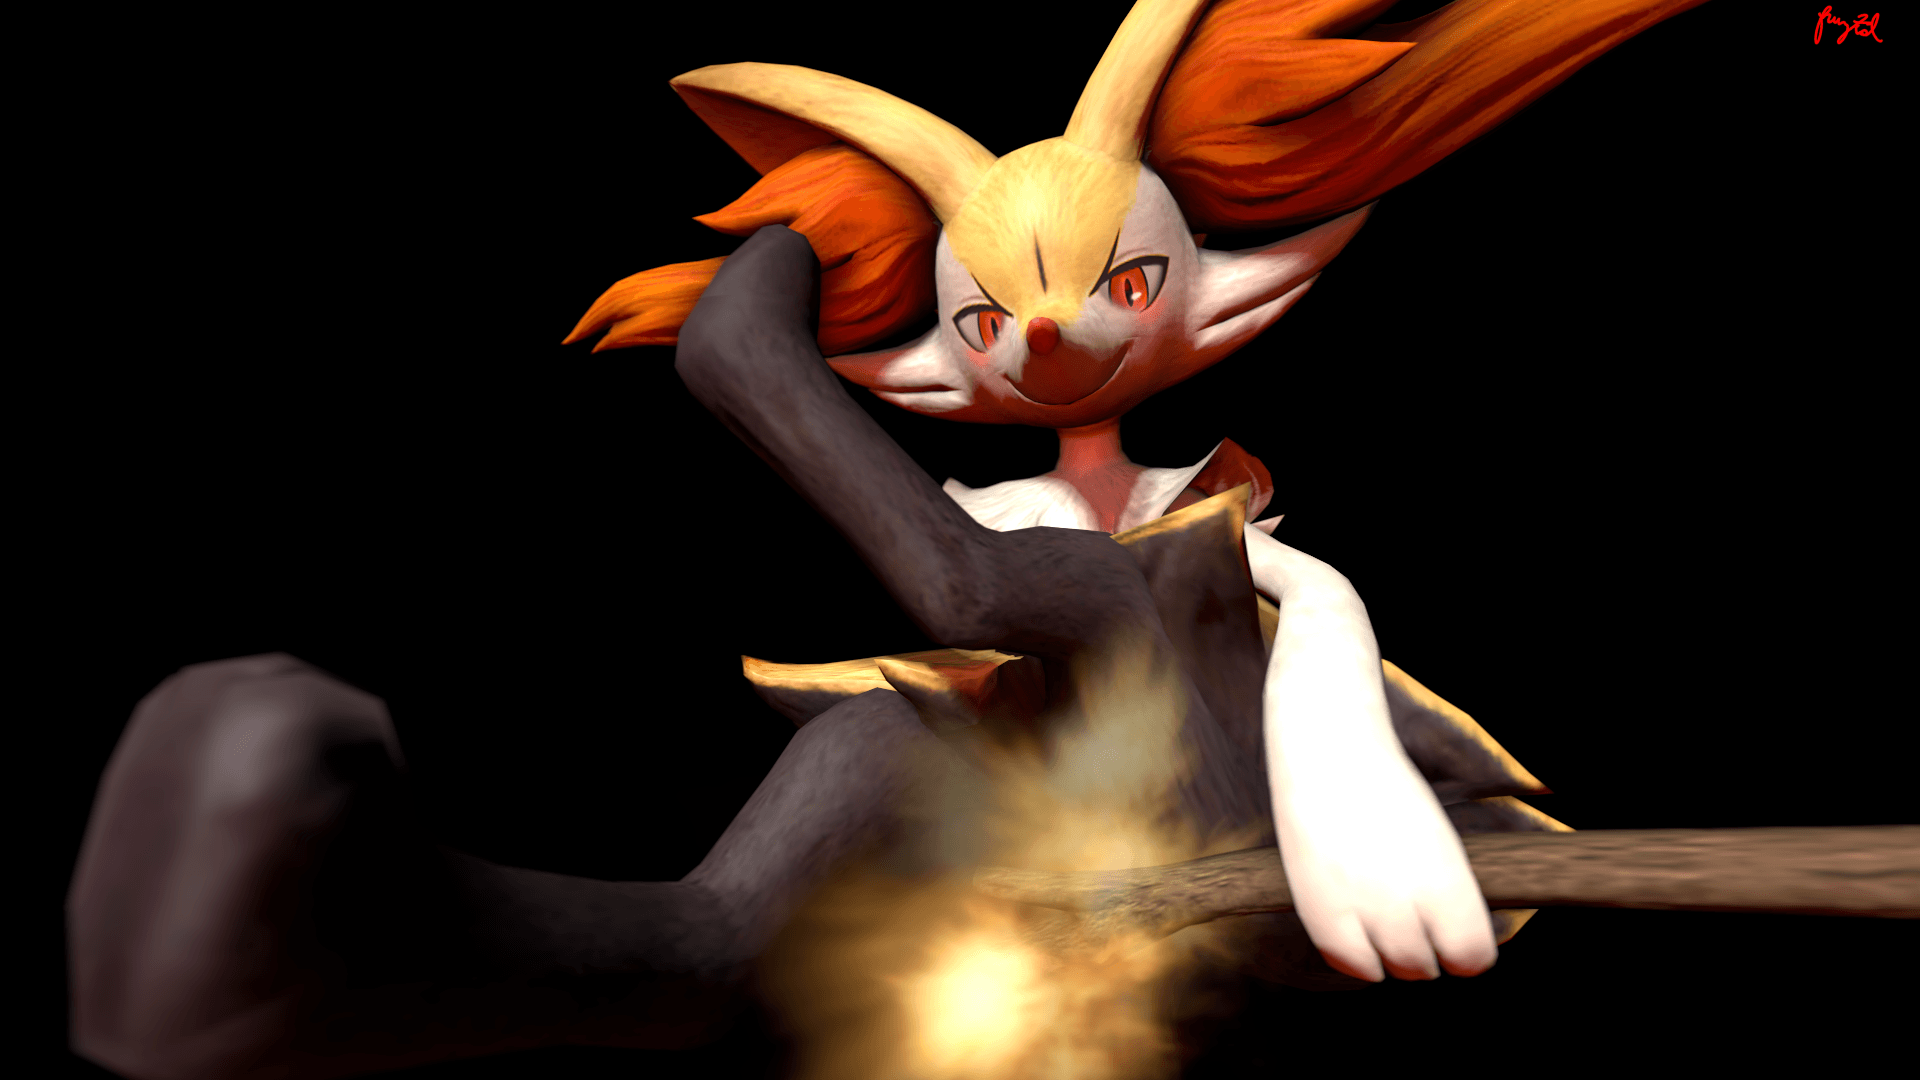 Braixen's *Flamethrower* by fruztal on DeviantArt